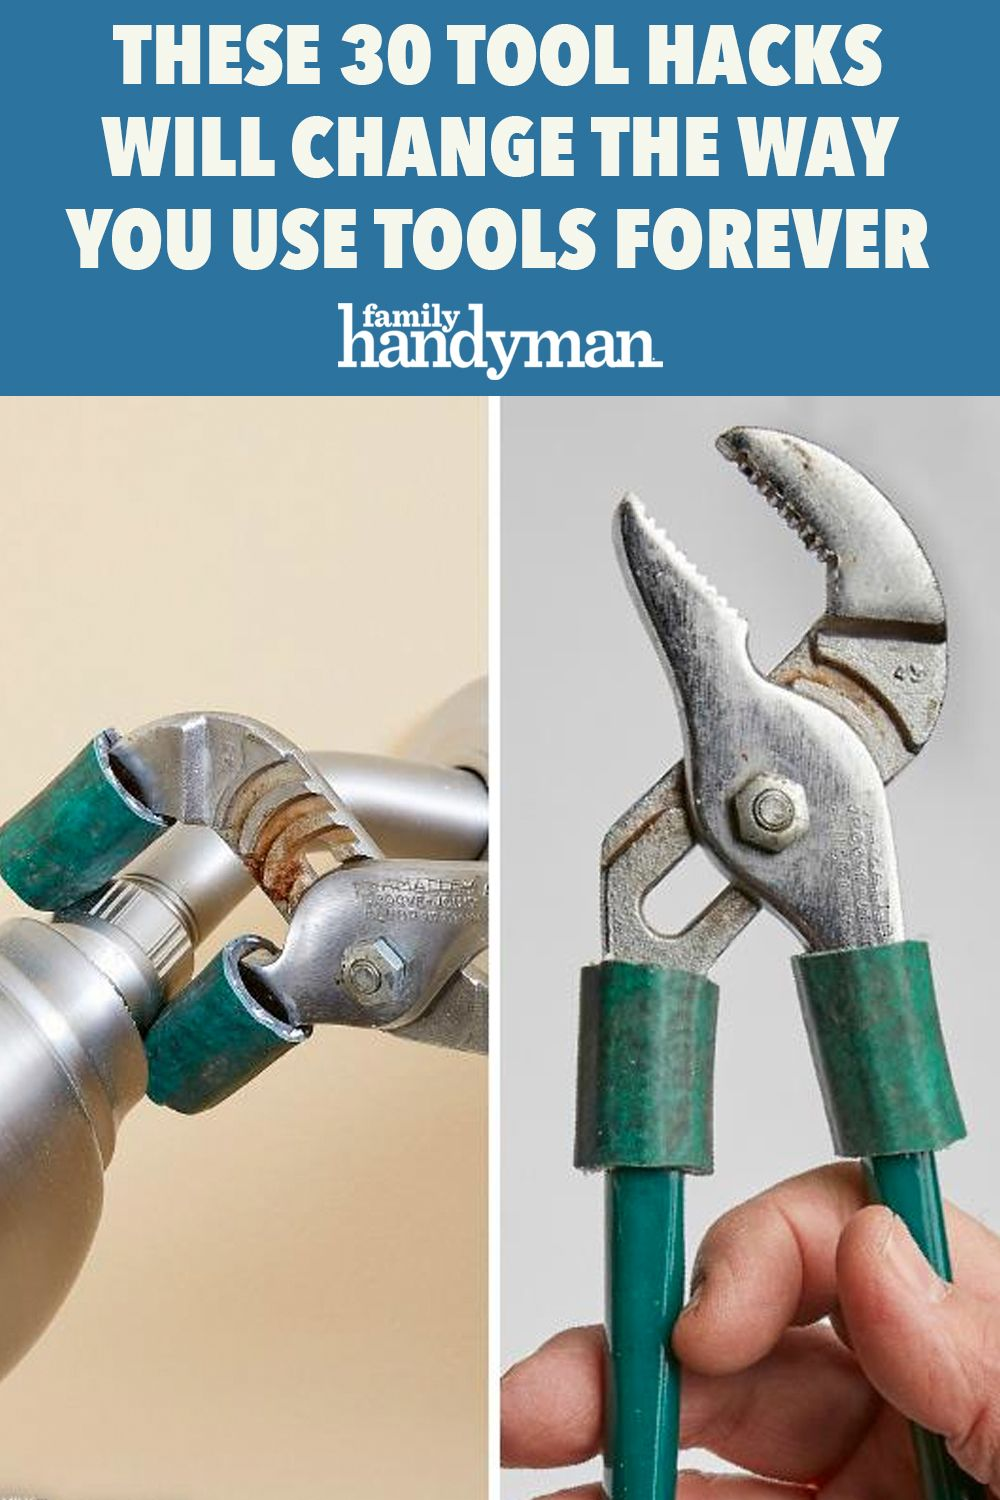 These 30 Tool Hacks Will Change the Way You Use To